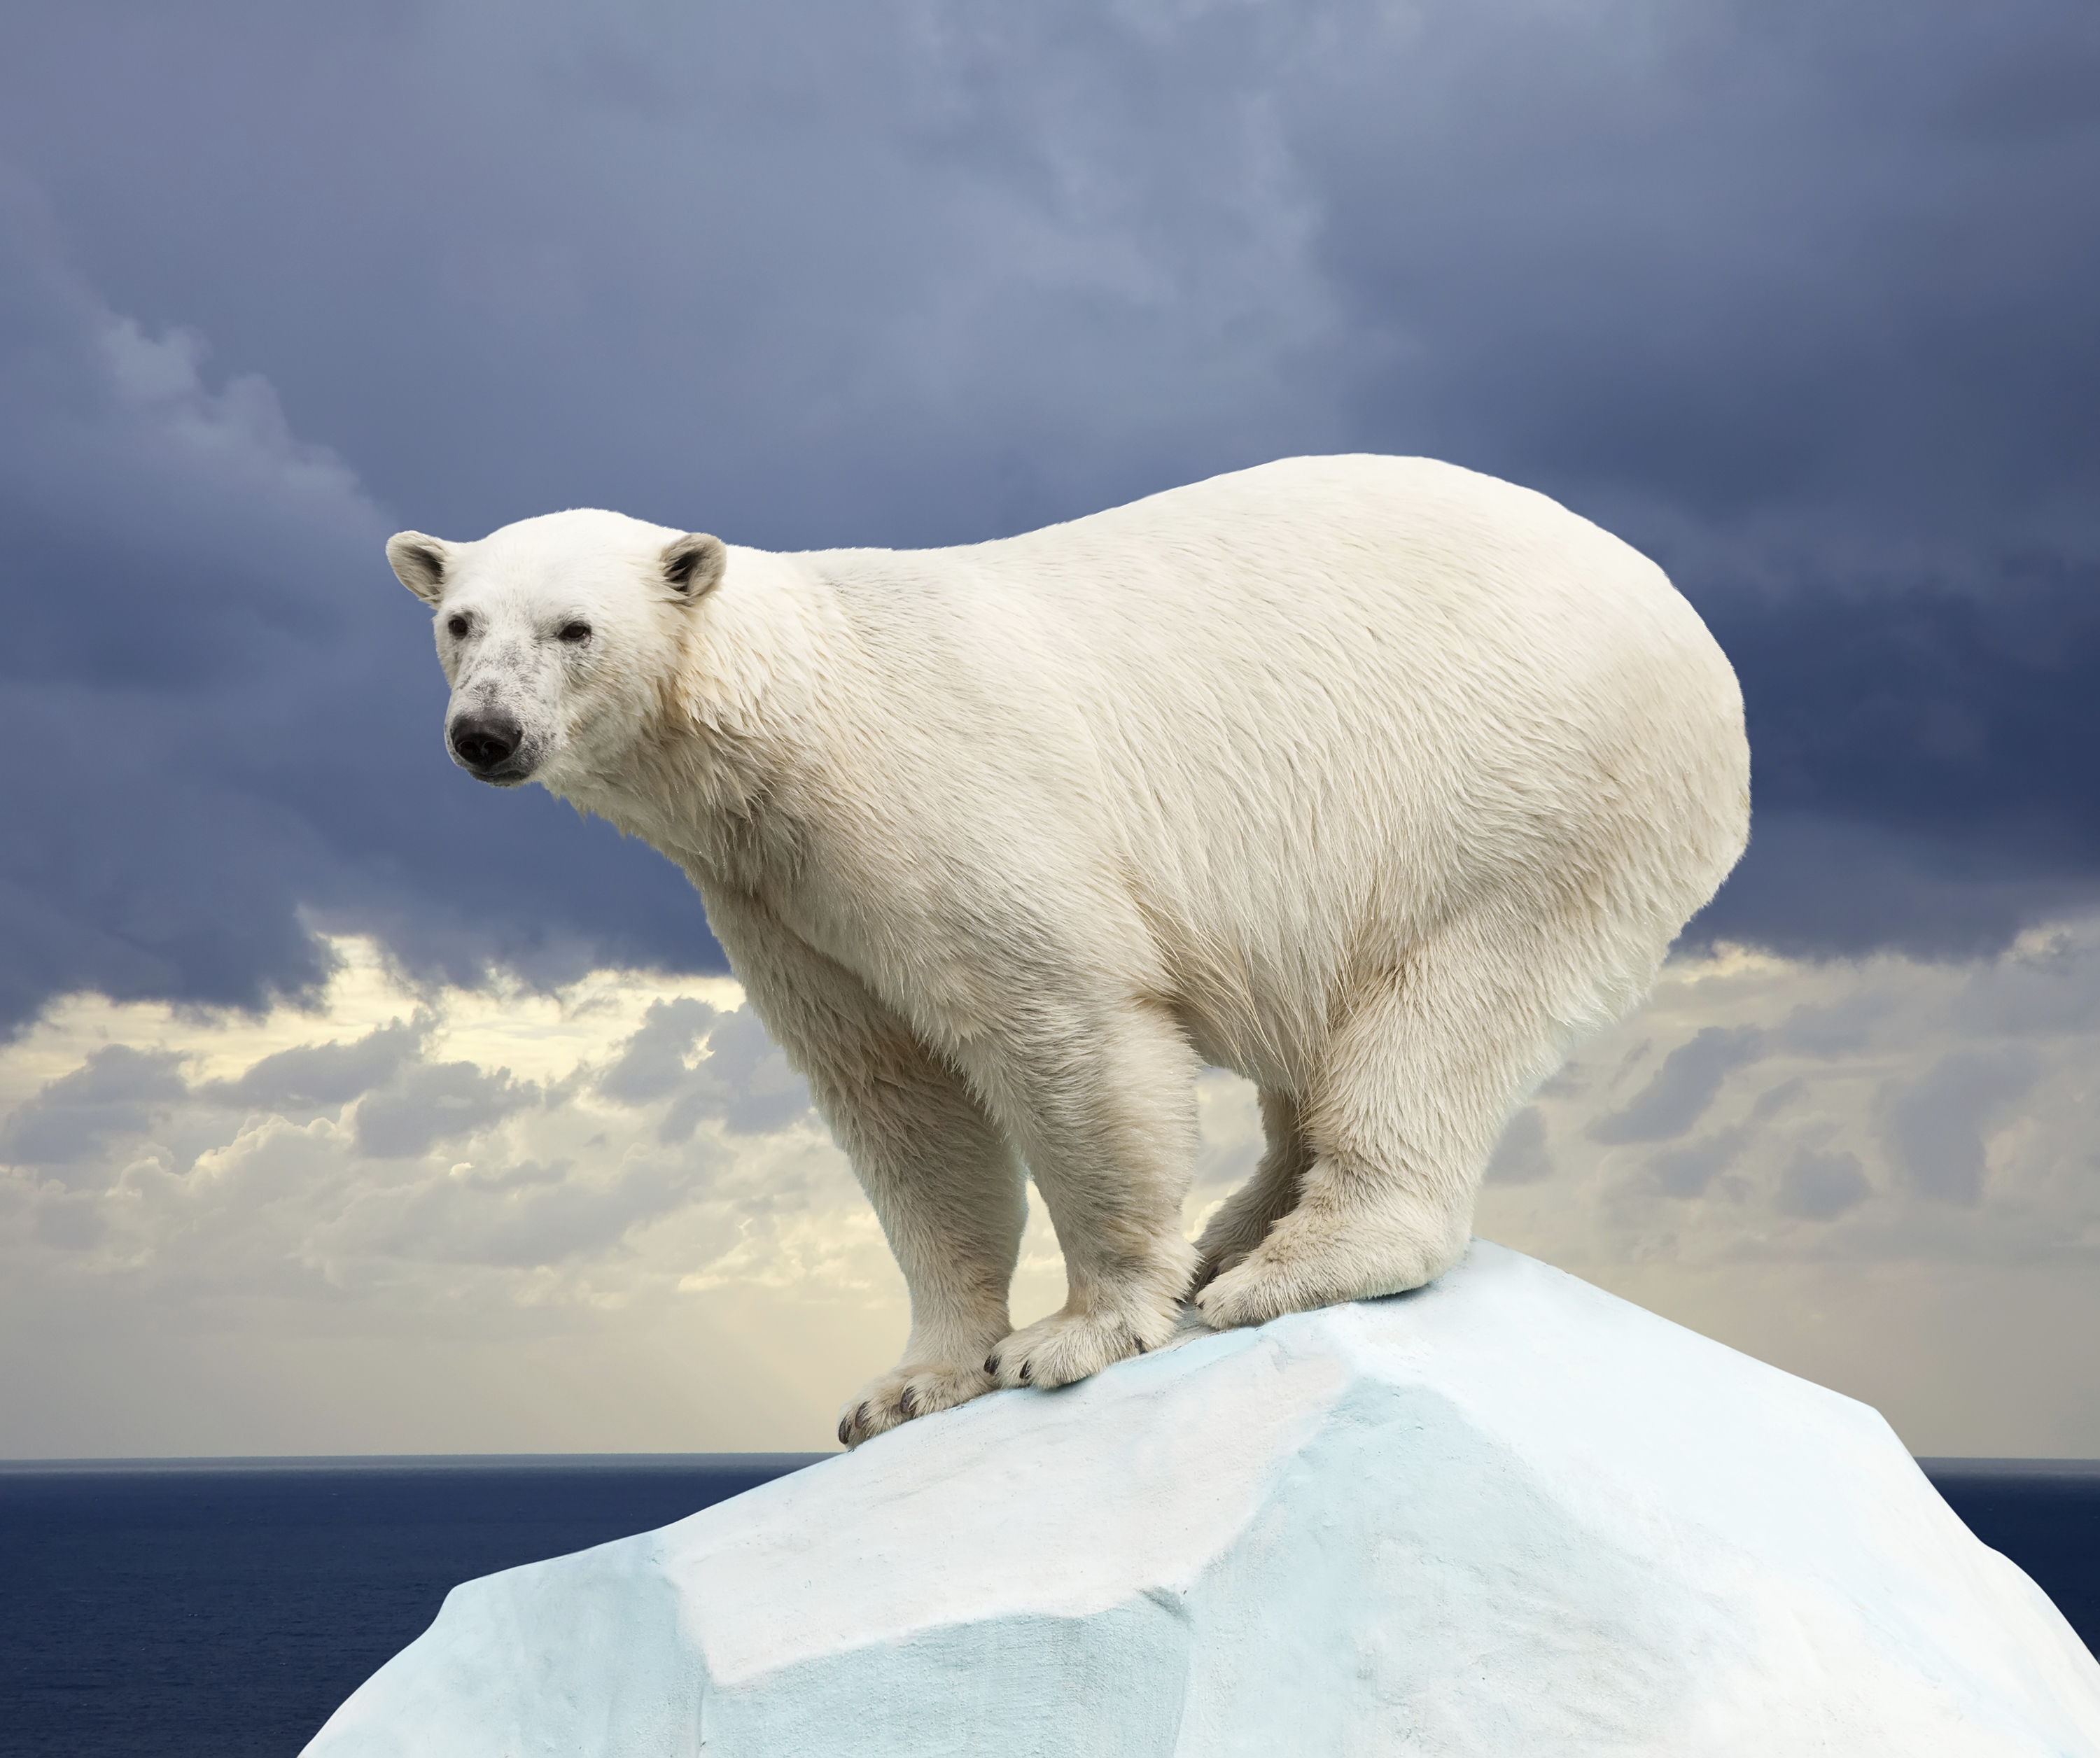 Can Polar Bears Survive Food Shortages Caused By Global